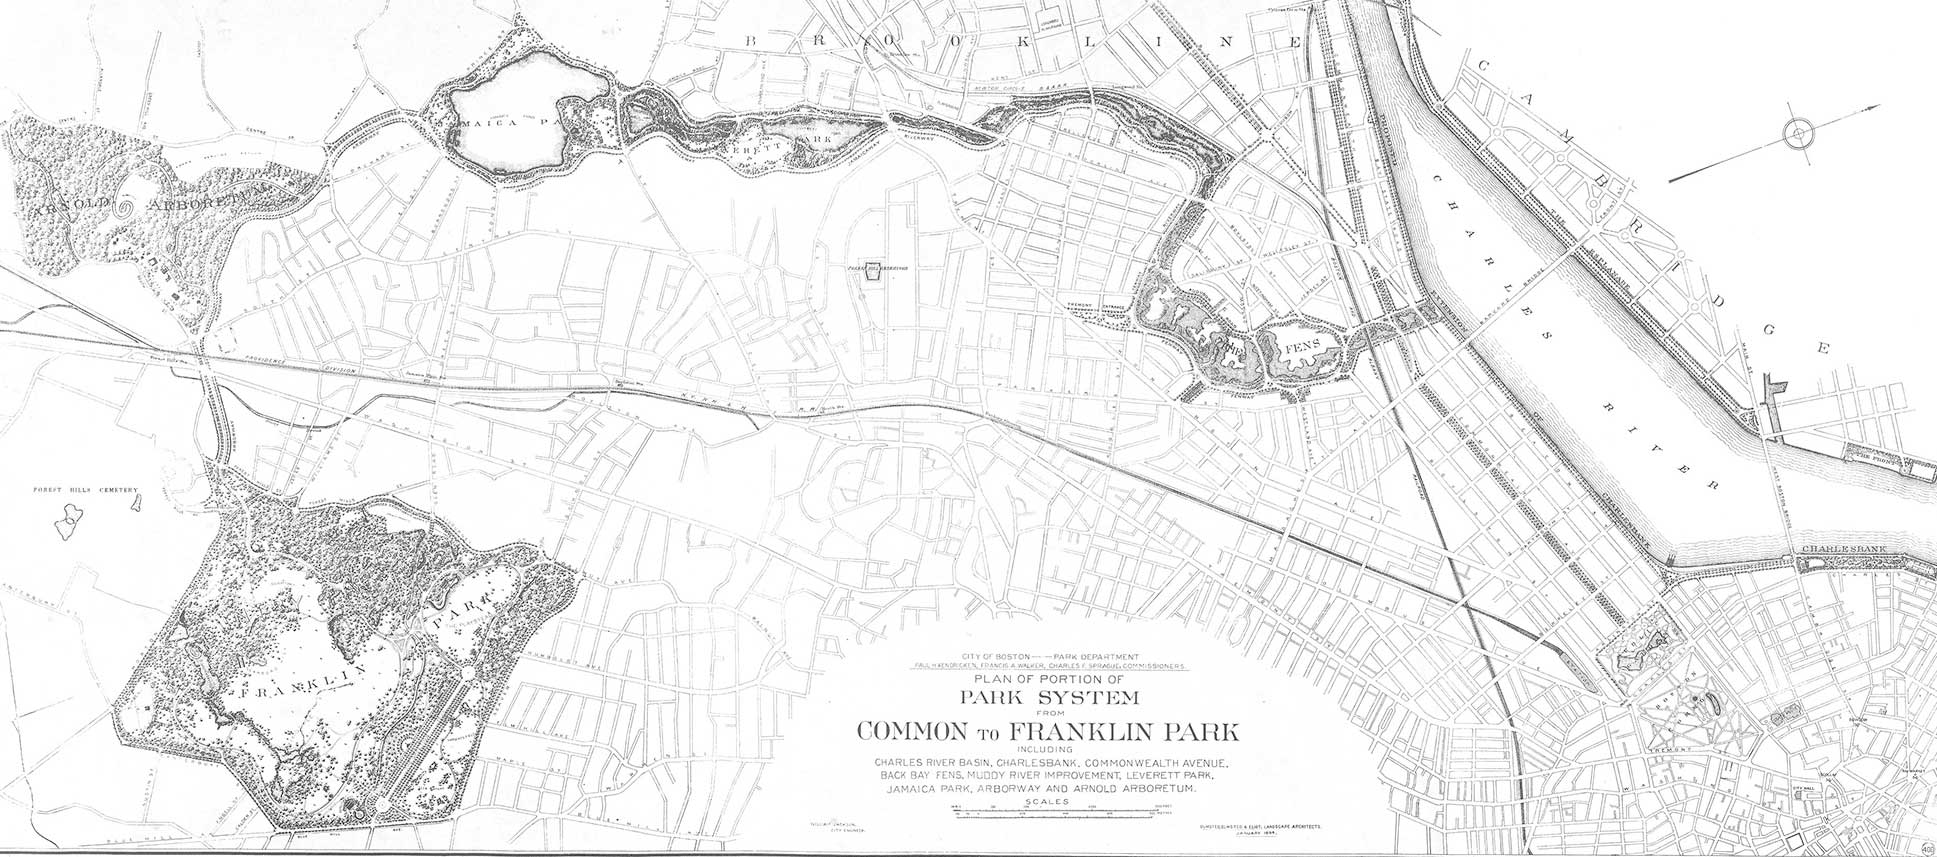 Decades in the making, Frederick Law Olmsted created the Emerald Necklace by transforming a sewage-clogged swamp into parkland, creating serene landscapes around ponds and converting carriage routes to tree-lined parkways. 1894 map: Courtesy National Park Service/Olmsted Archives.